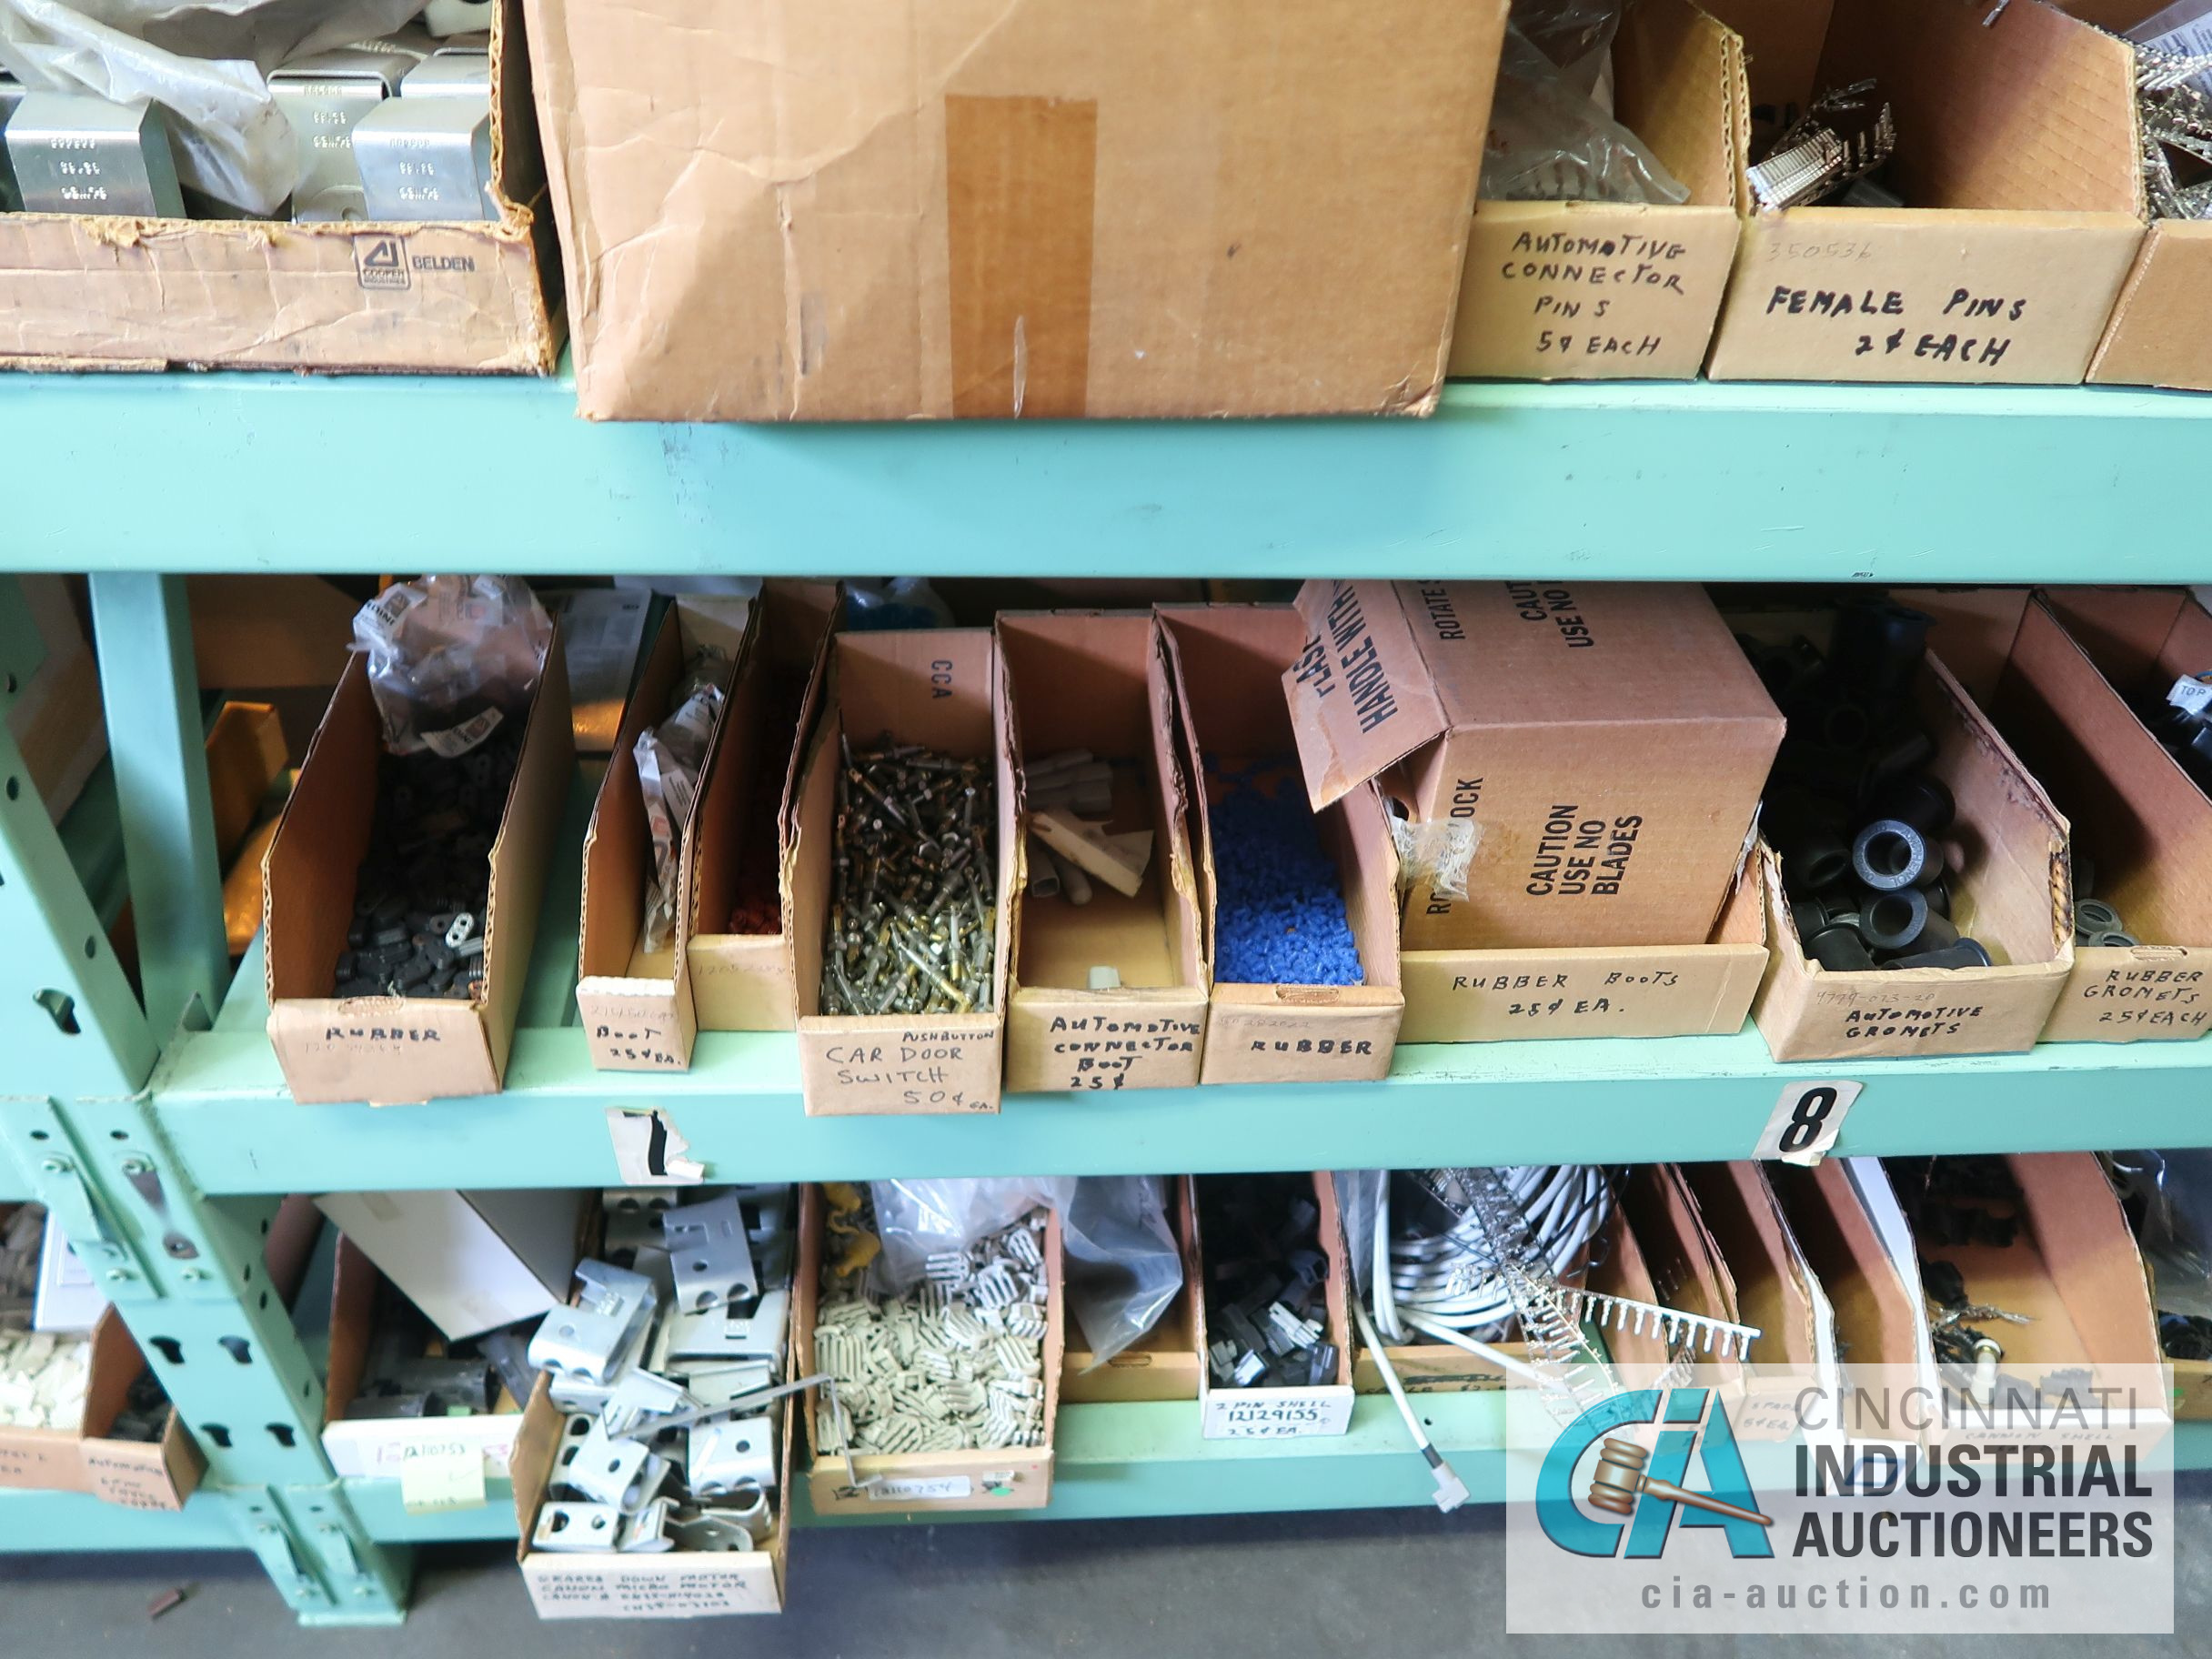 CONTENTS OF (5) RACKS INCLUDING MISCELLANEOUS AUTOMOTIVE PARTS, LIGHTS, FILTERS, ENGINE PARTS, RIMS, - Image 16 of 29